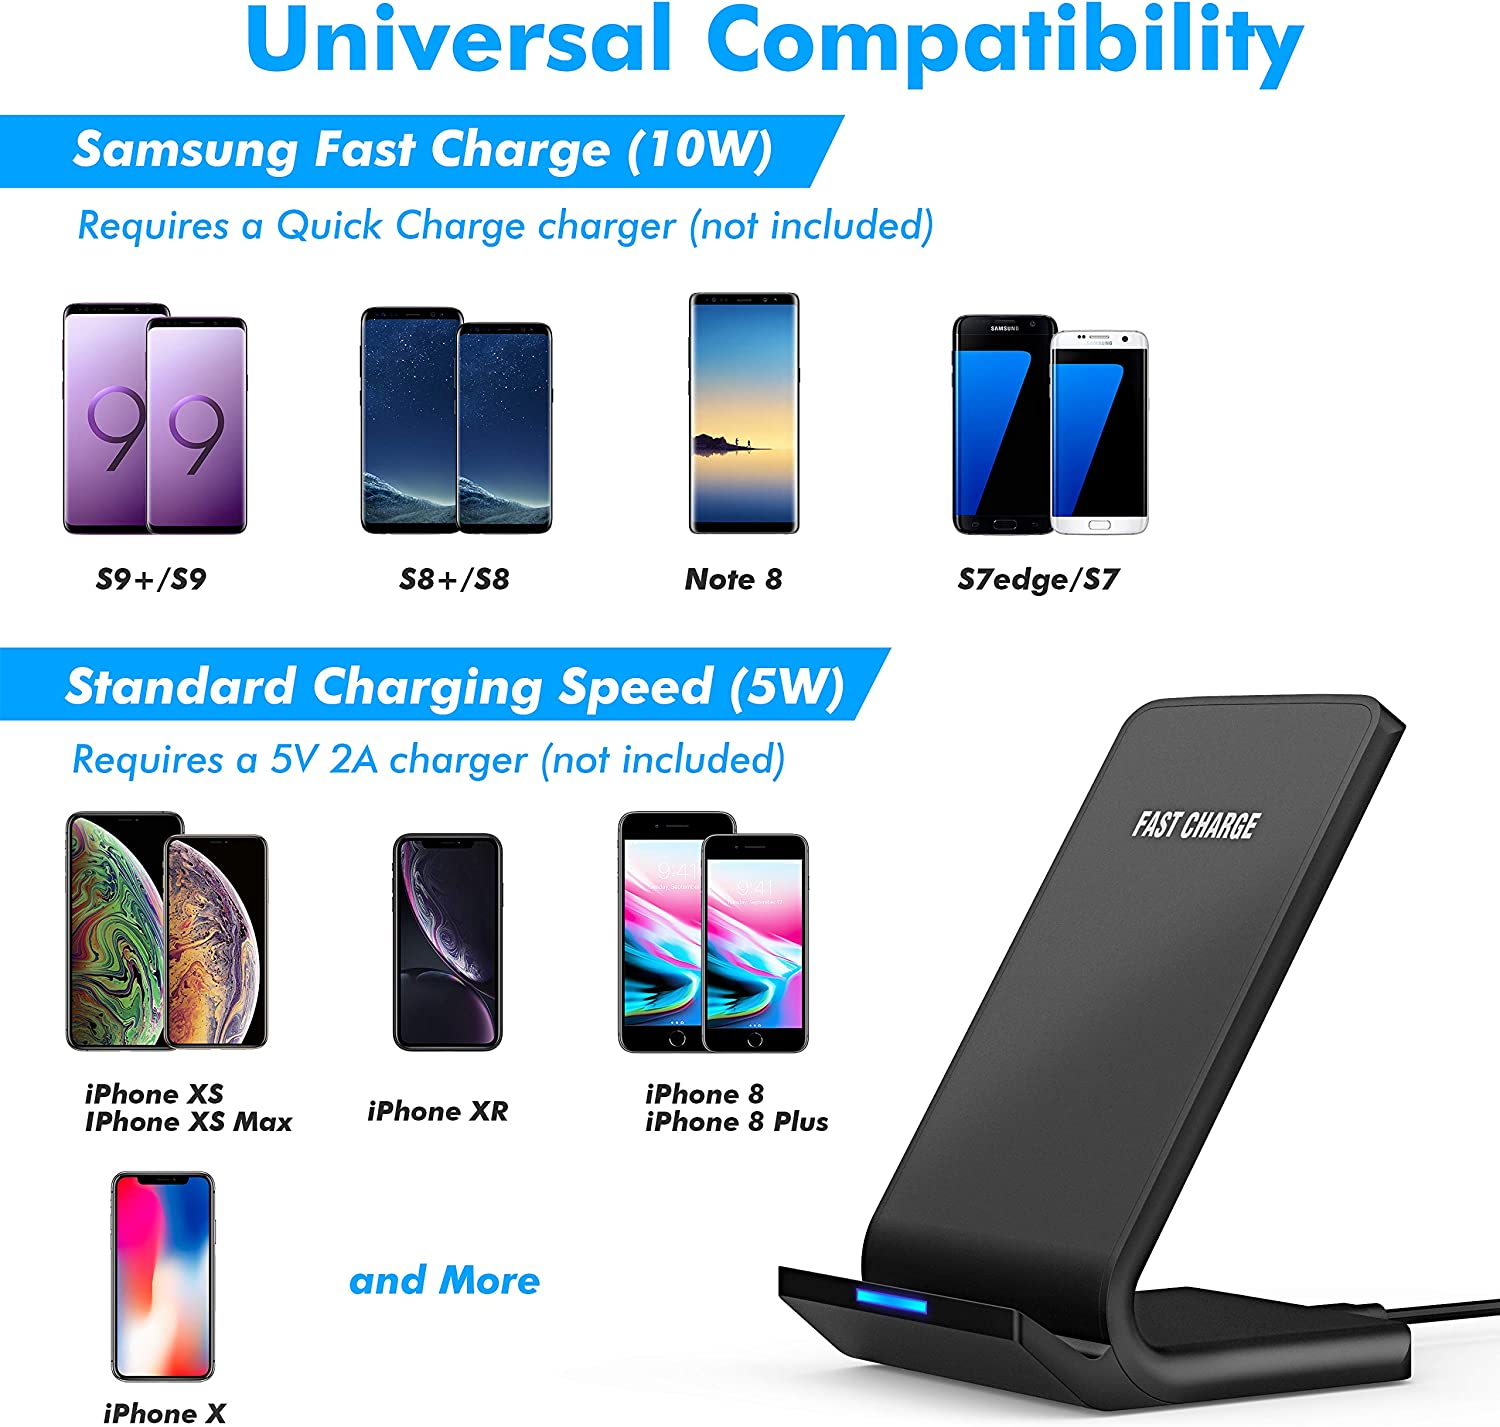 No AC Adapter XS Max AHUTORU Fast Wireless Charger XS XR Note 10,9 11 Pro Samsung S10 S9 S8 11 Pro Max X Qi-Certified 10W Wireless Charging Stand with Quick Adapter,Compatible with iPhone 11